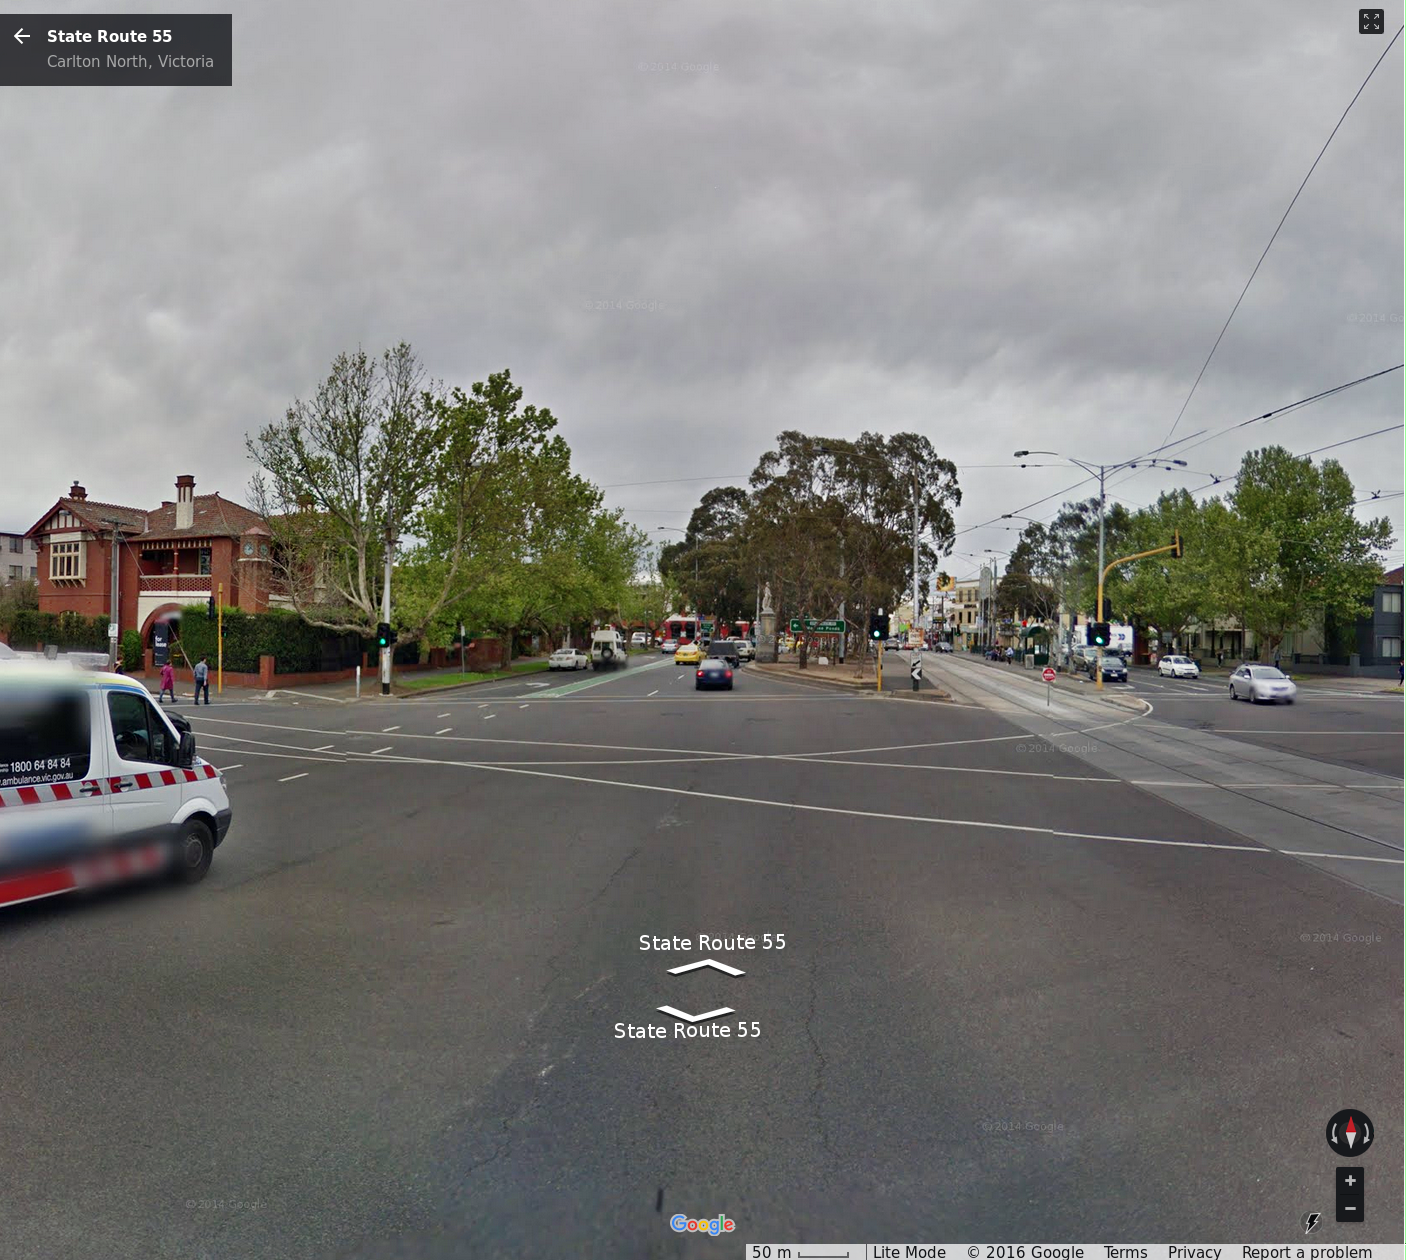 This should be Sydney-Road.png.  Is it missing?